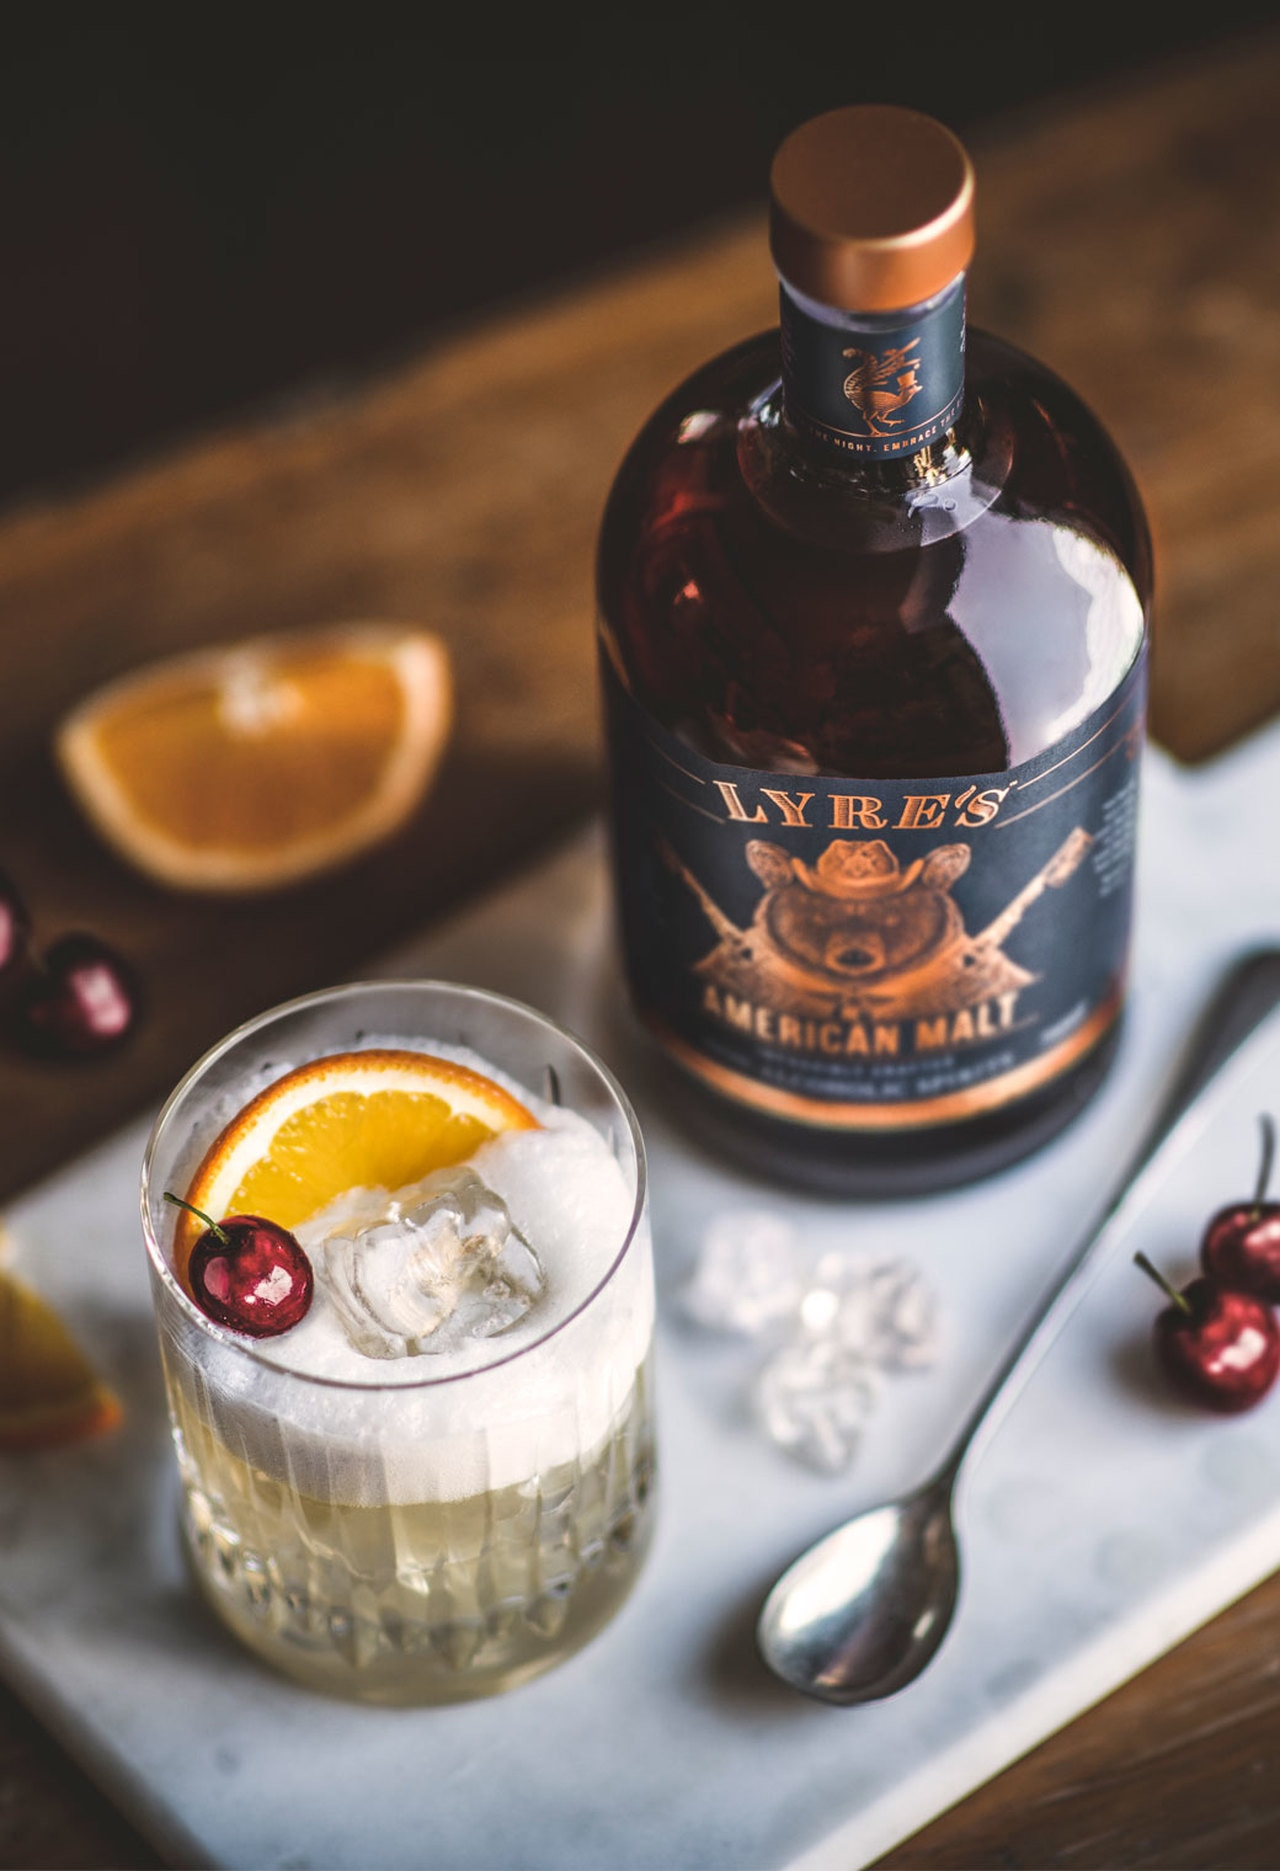 Lyres's Alcohol-free whiskey sour